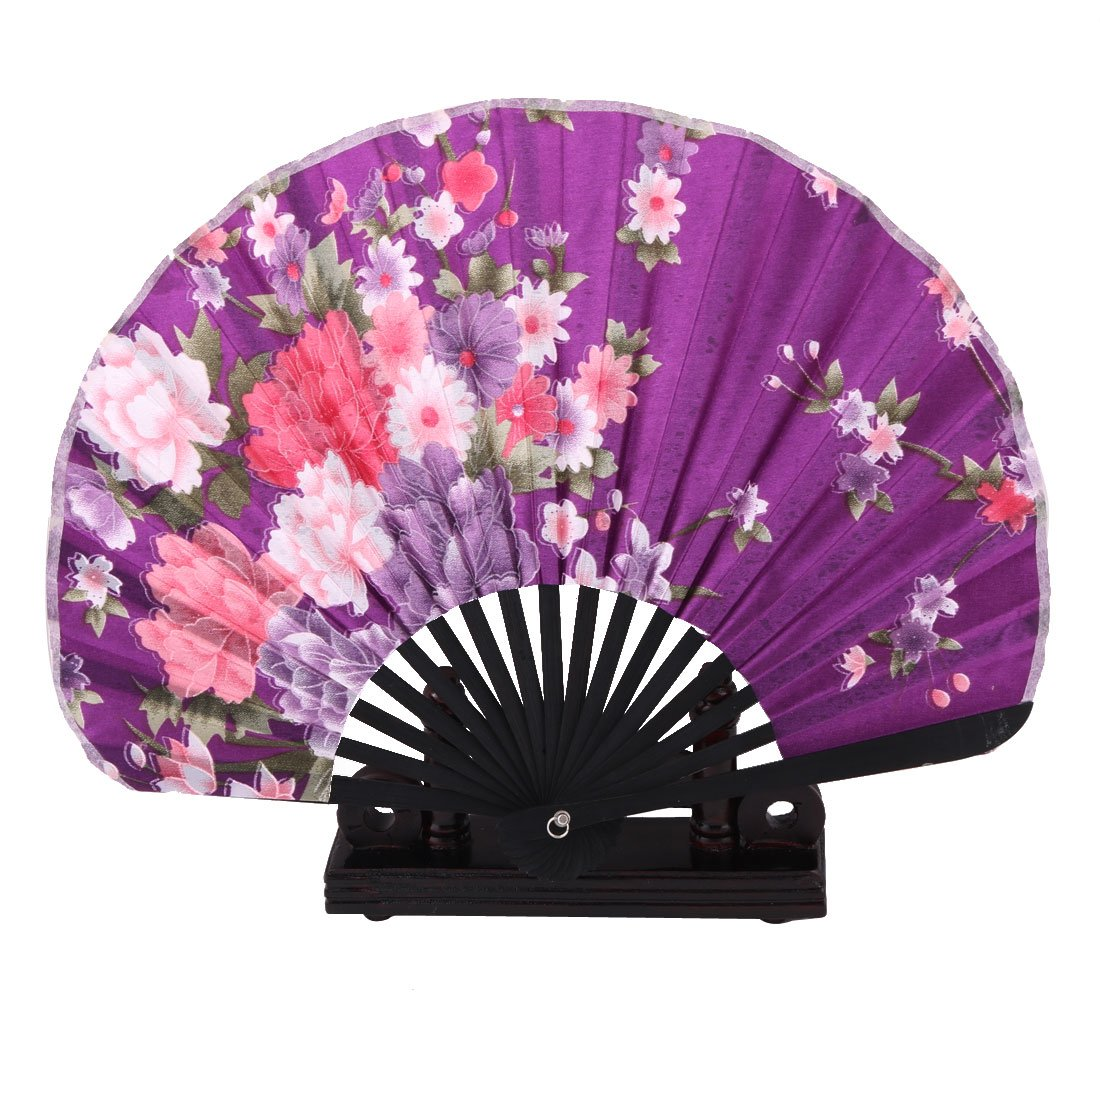 uxcell Bamboo Flower Print Dance Cooling Folding Hand Fan Display Holder 2 in 1 Purple